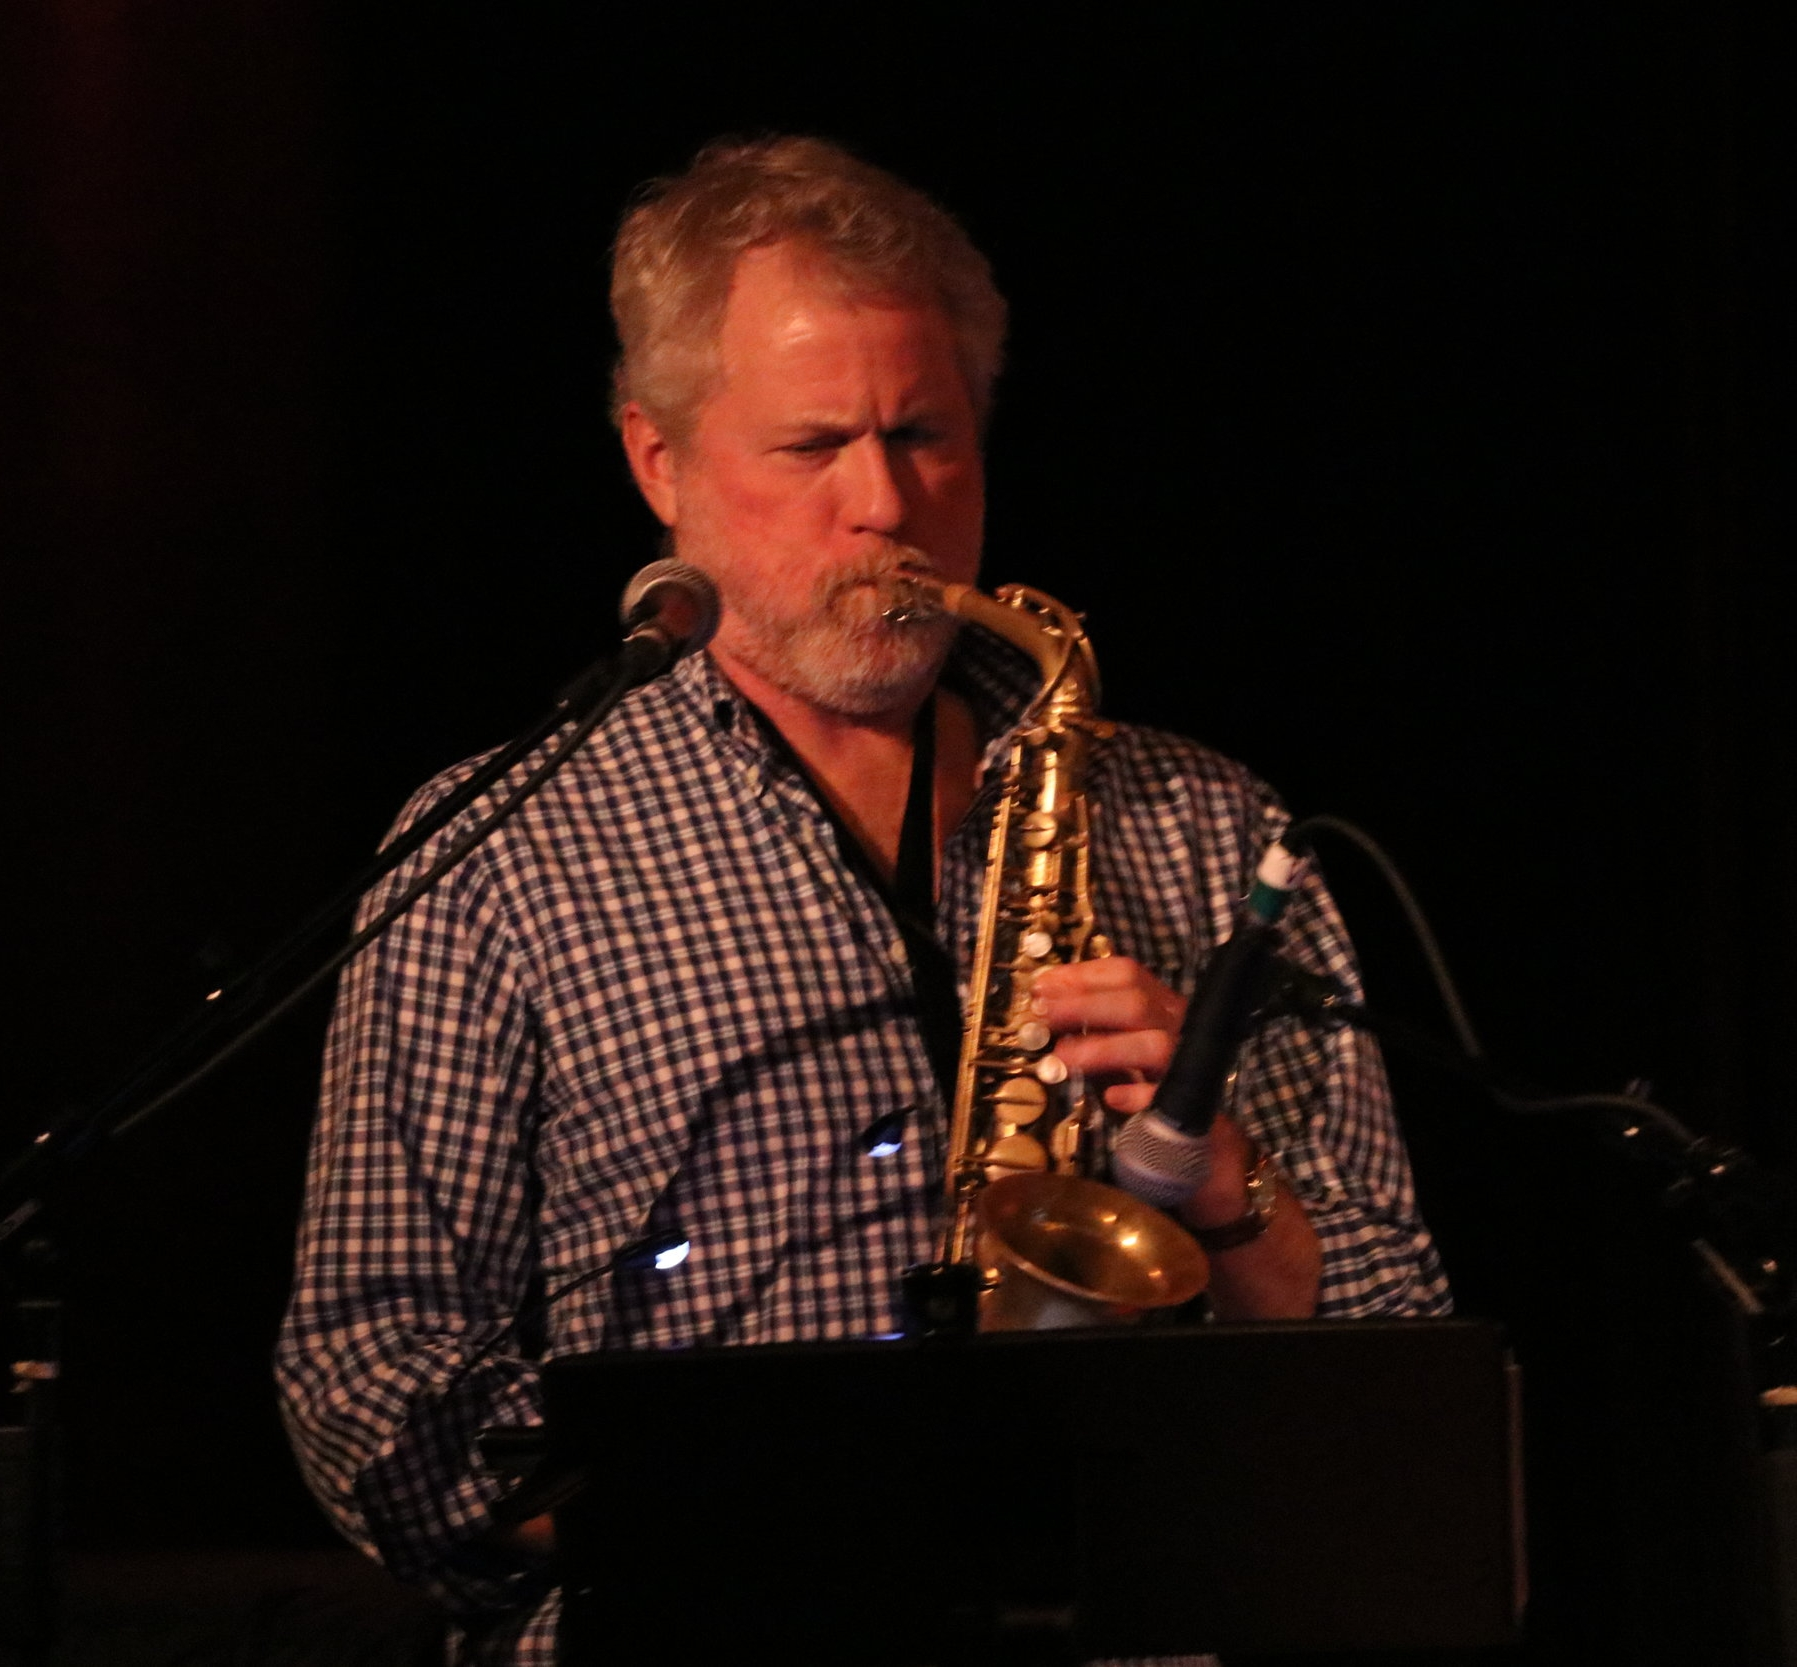 Bruce Gallagher   A career educator, performer and conductor,  Bruce of Whidbey Island provides a professional touch with his soaring solos and improvisations on saxes and flute, encompassing all styles from jazz and blues to rock and pop and beyond.